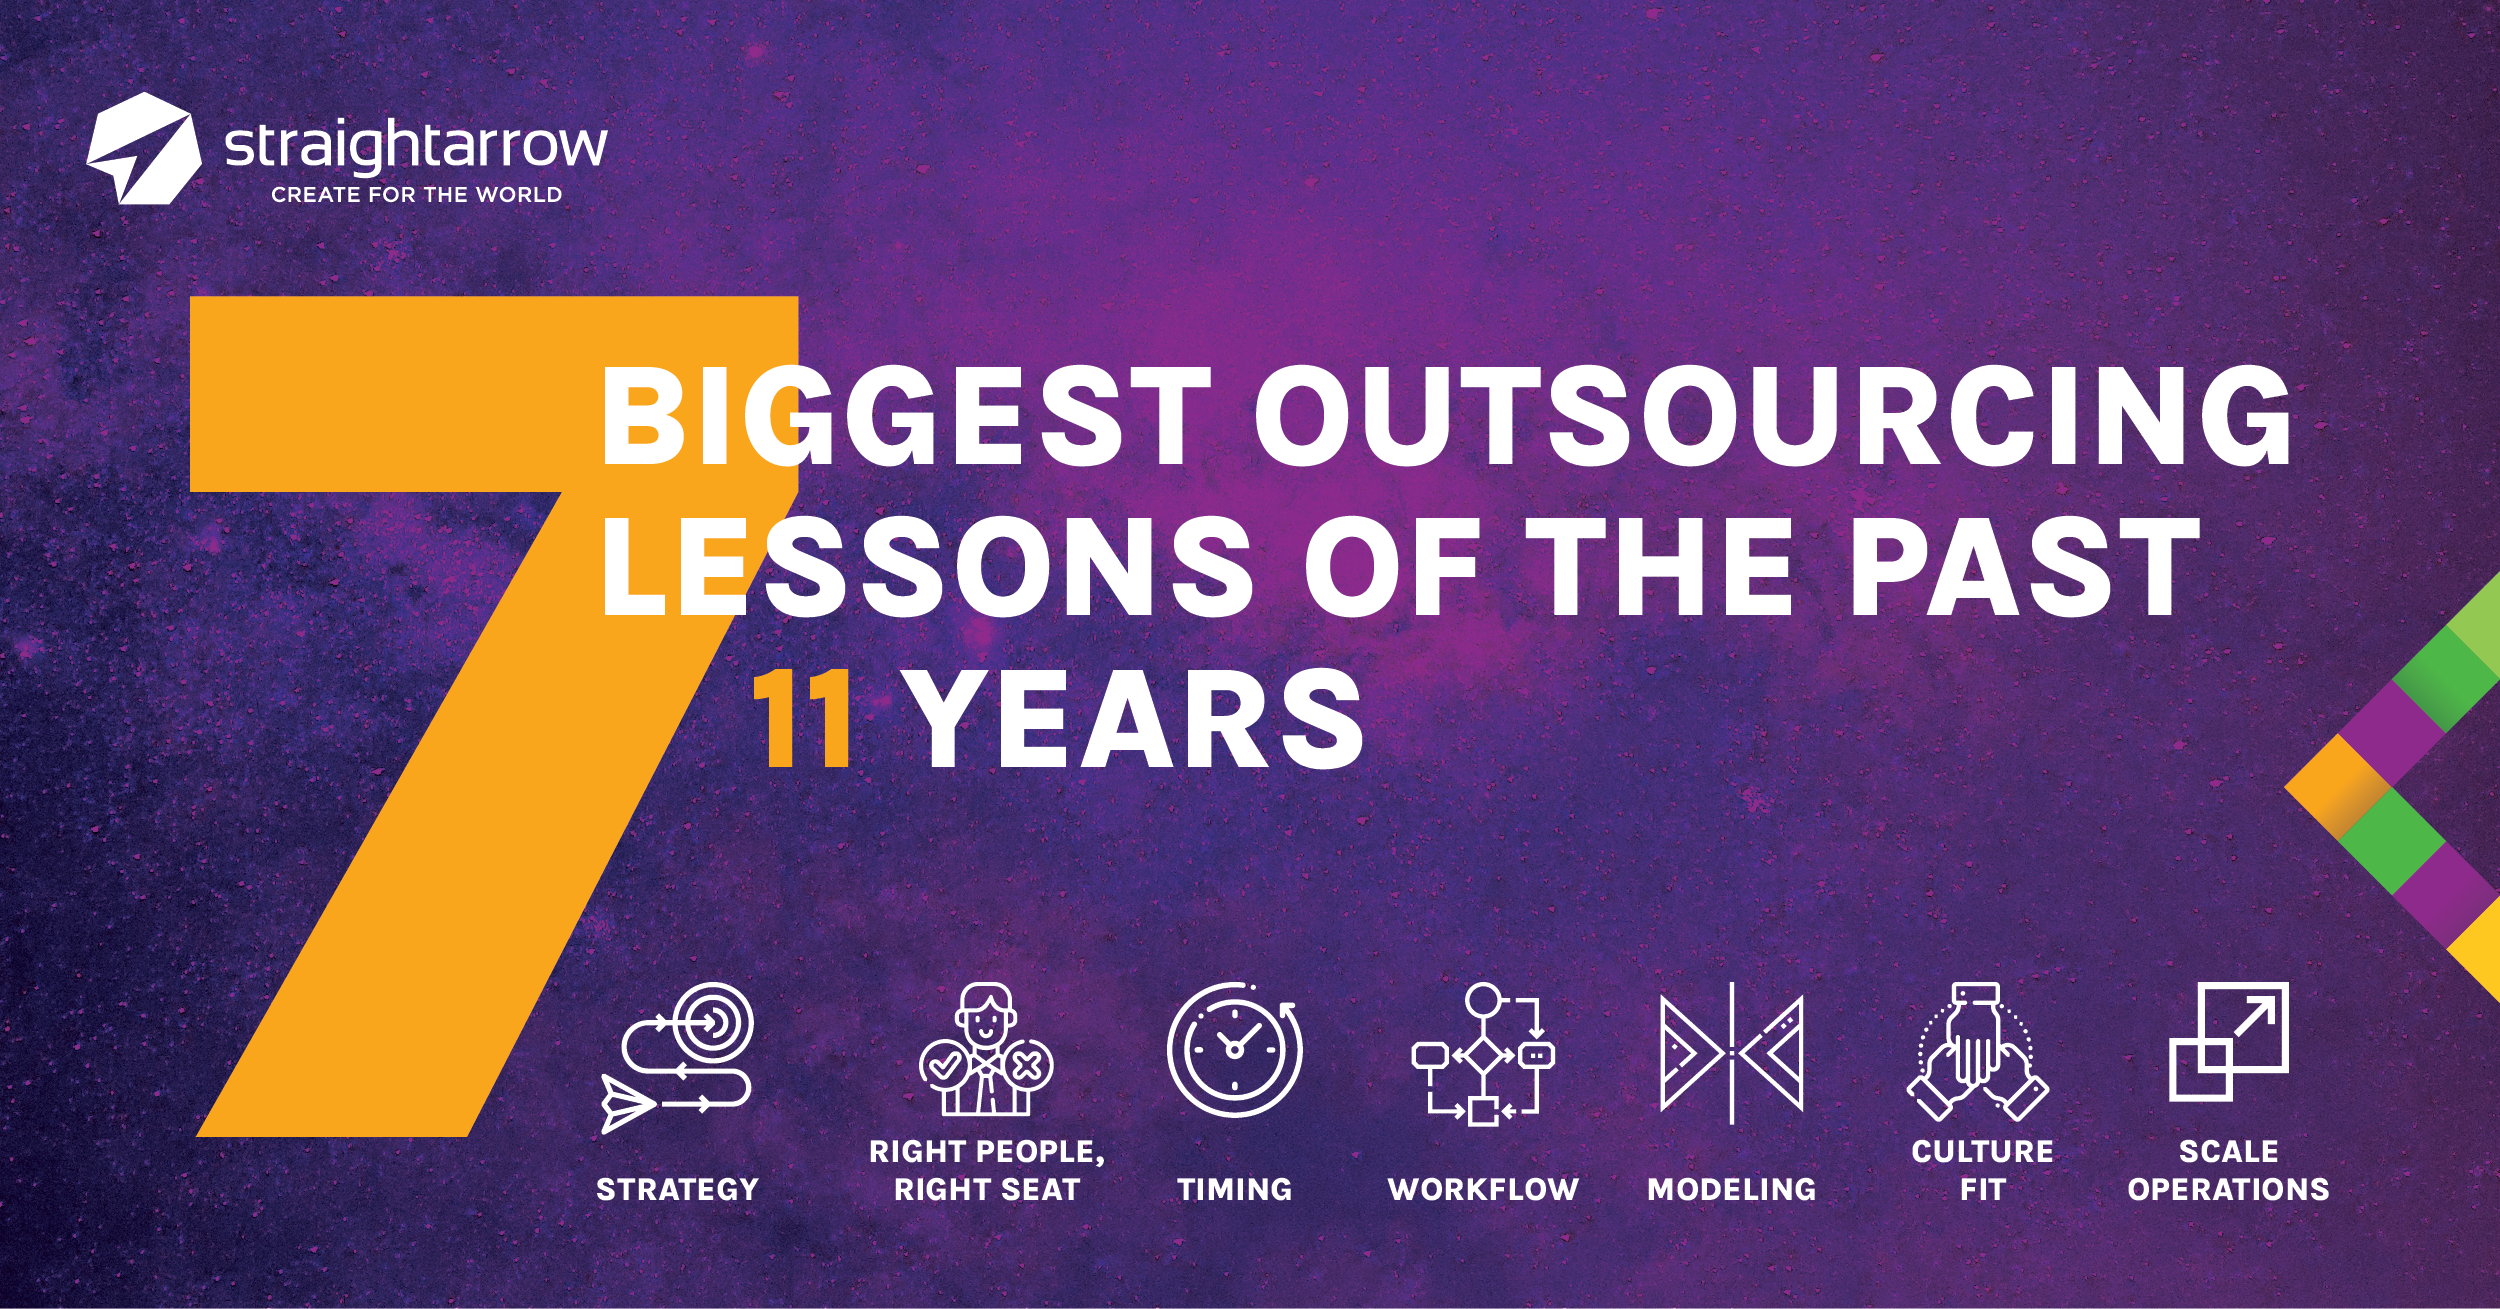 7 Biggest Outsourcing Lessons of the past 11 Years